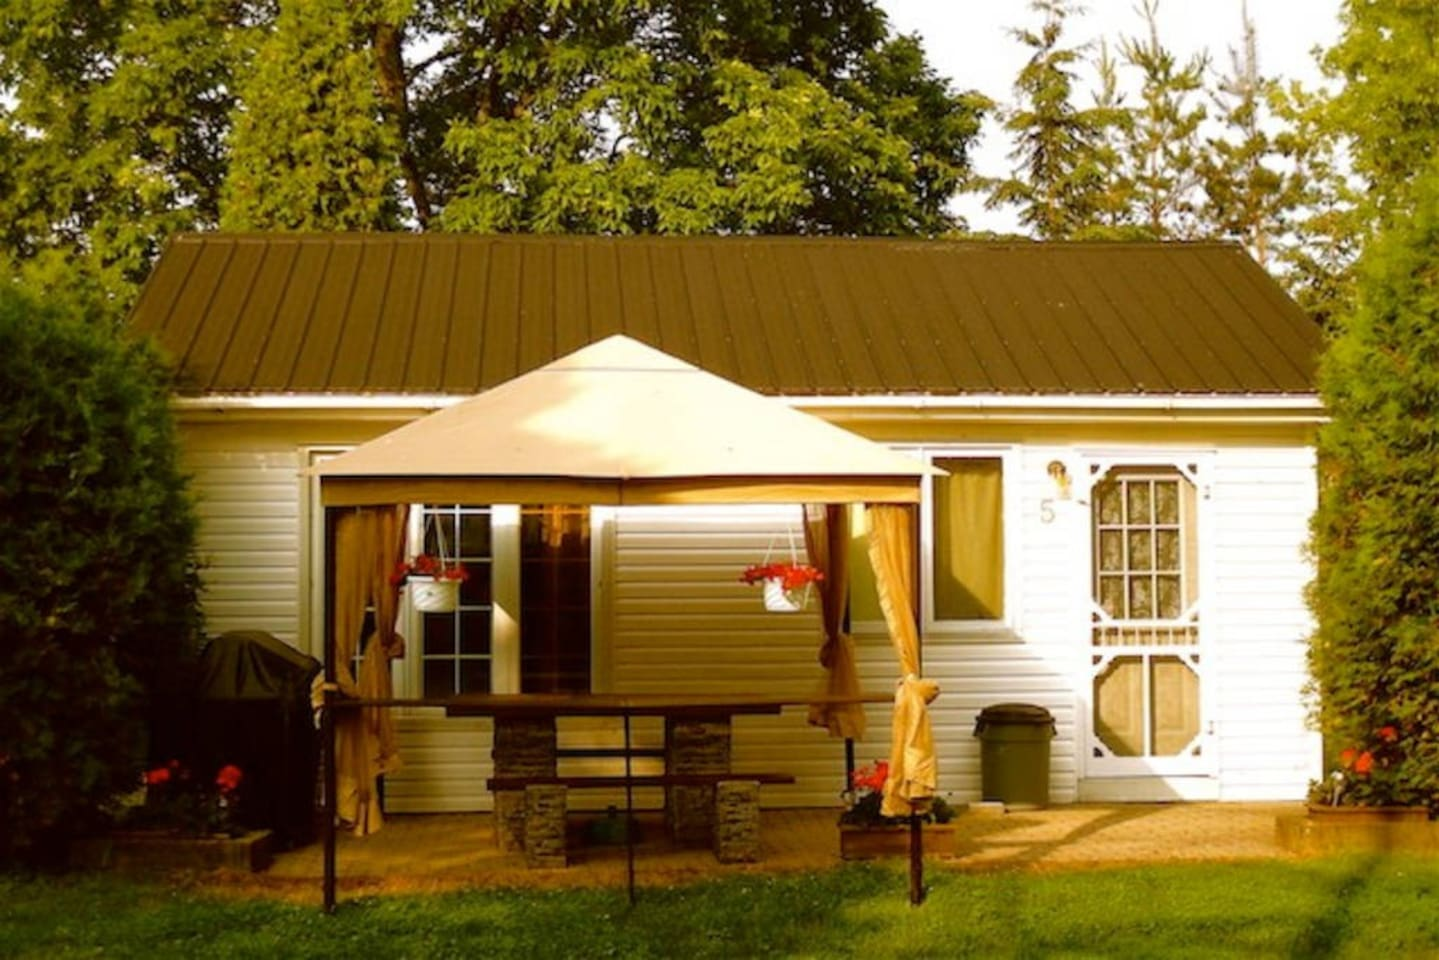 Cottage 5 - one bedroom with two queen size beds sleeps four people